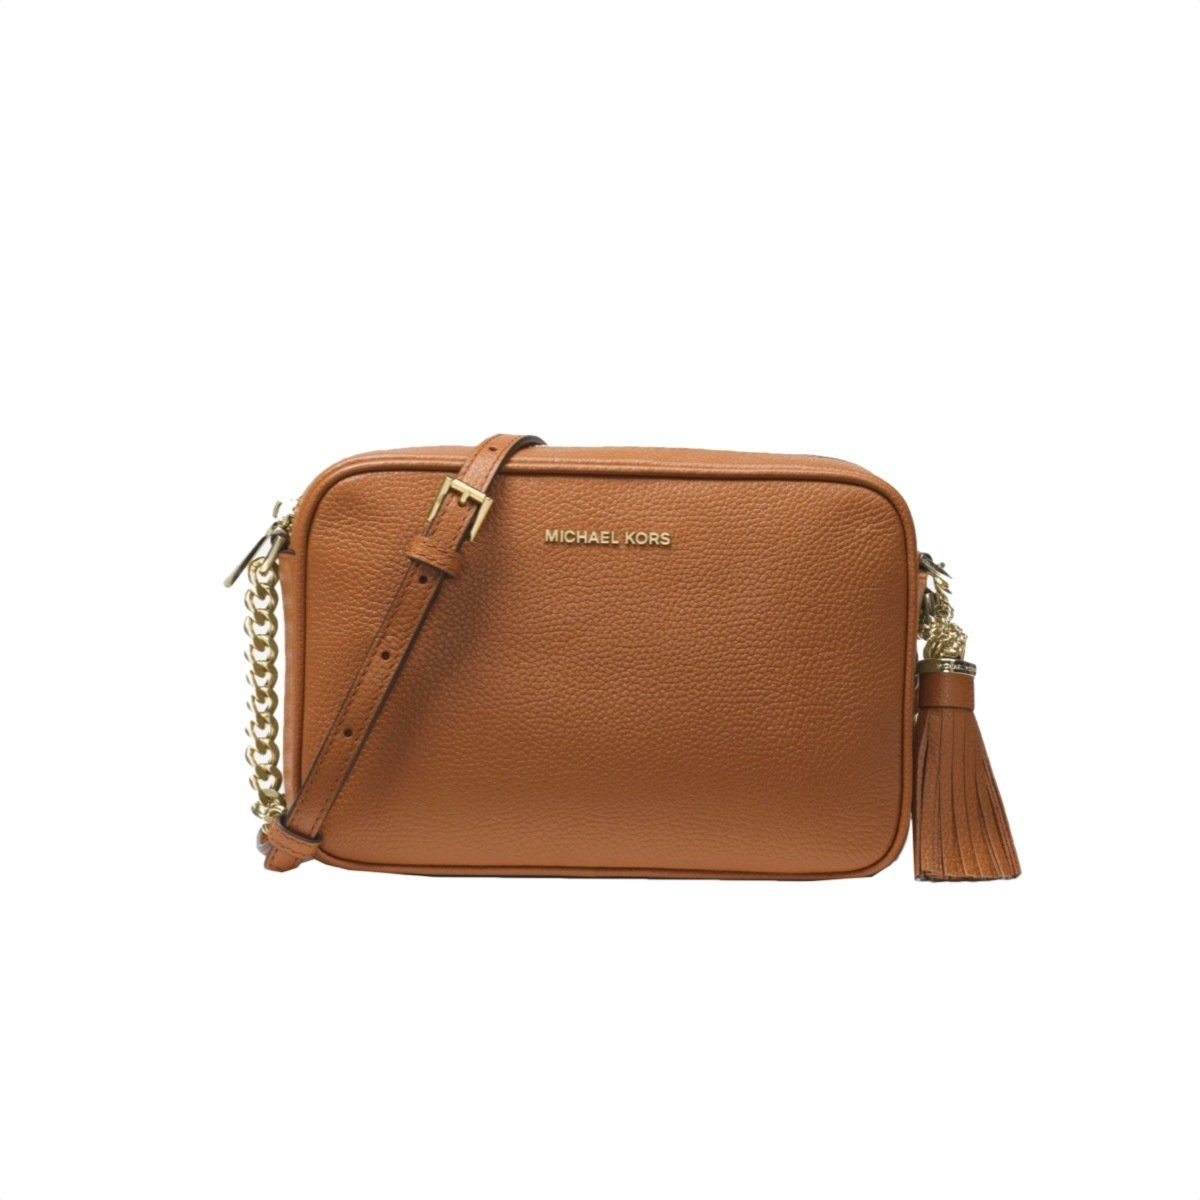 MICHAEL KORS - Tracolla Ginny in pelle - Acorn